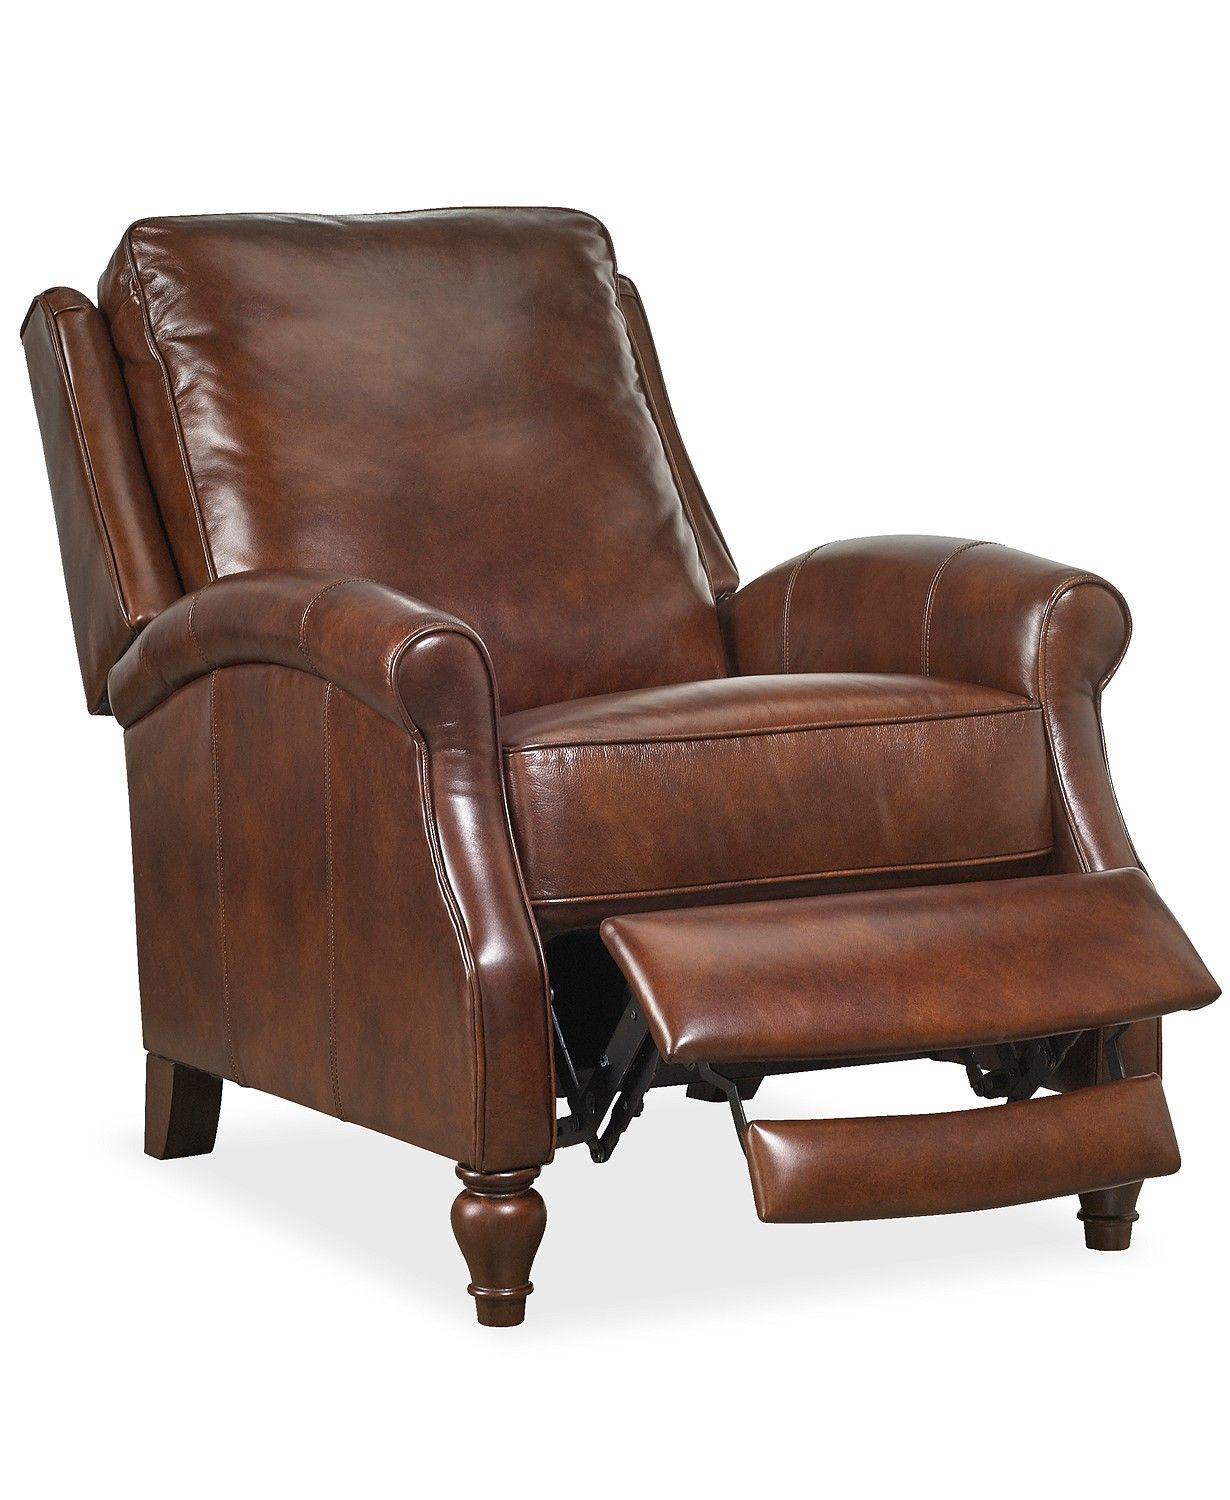 Leeah Leather Pushback Recliner Leather Recliner Metal Dining